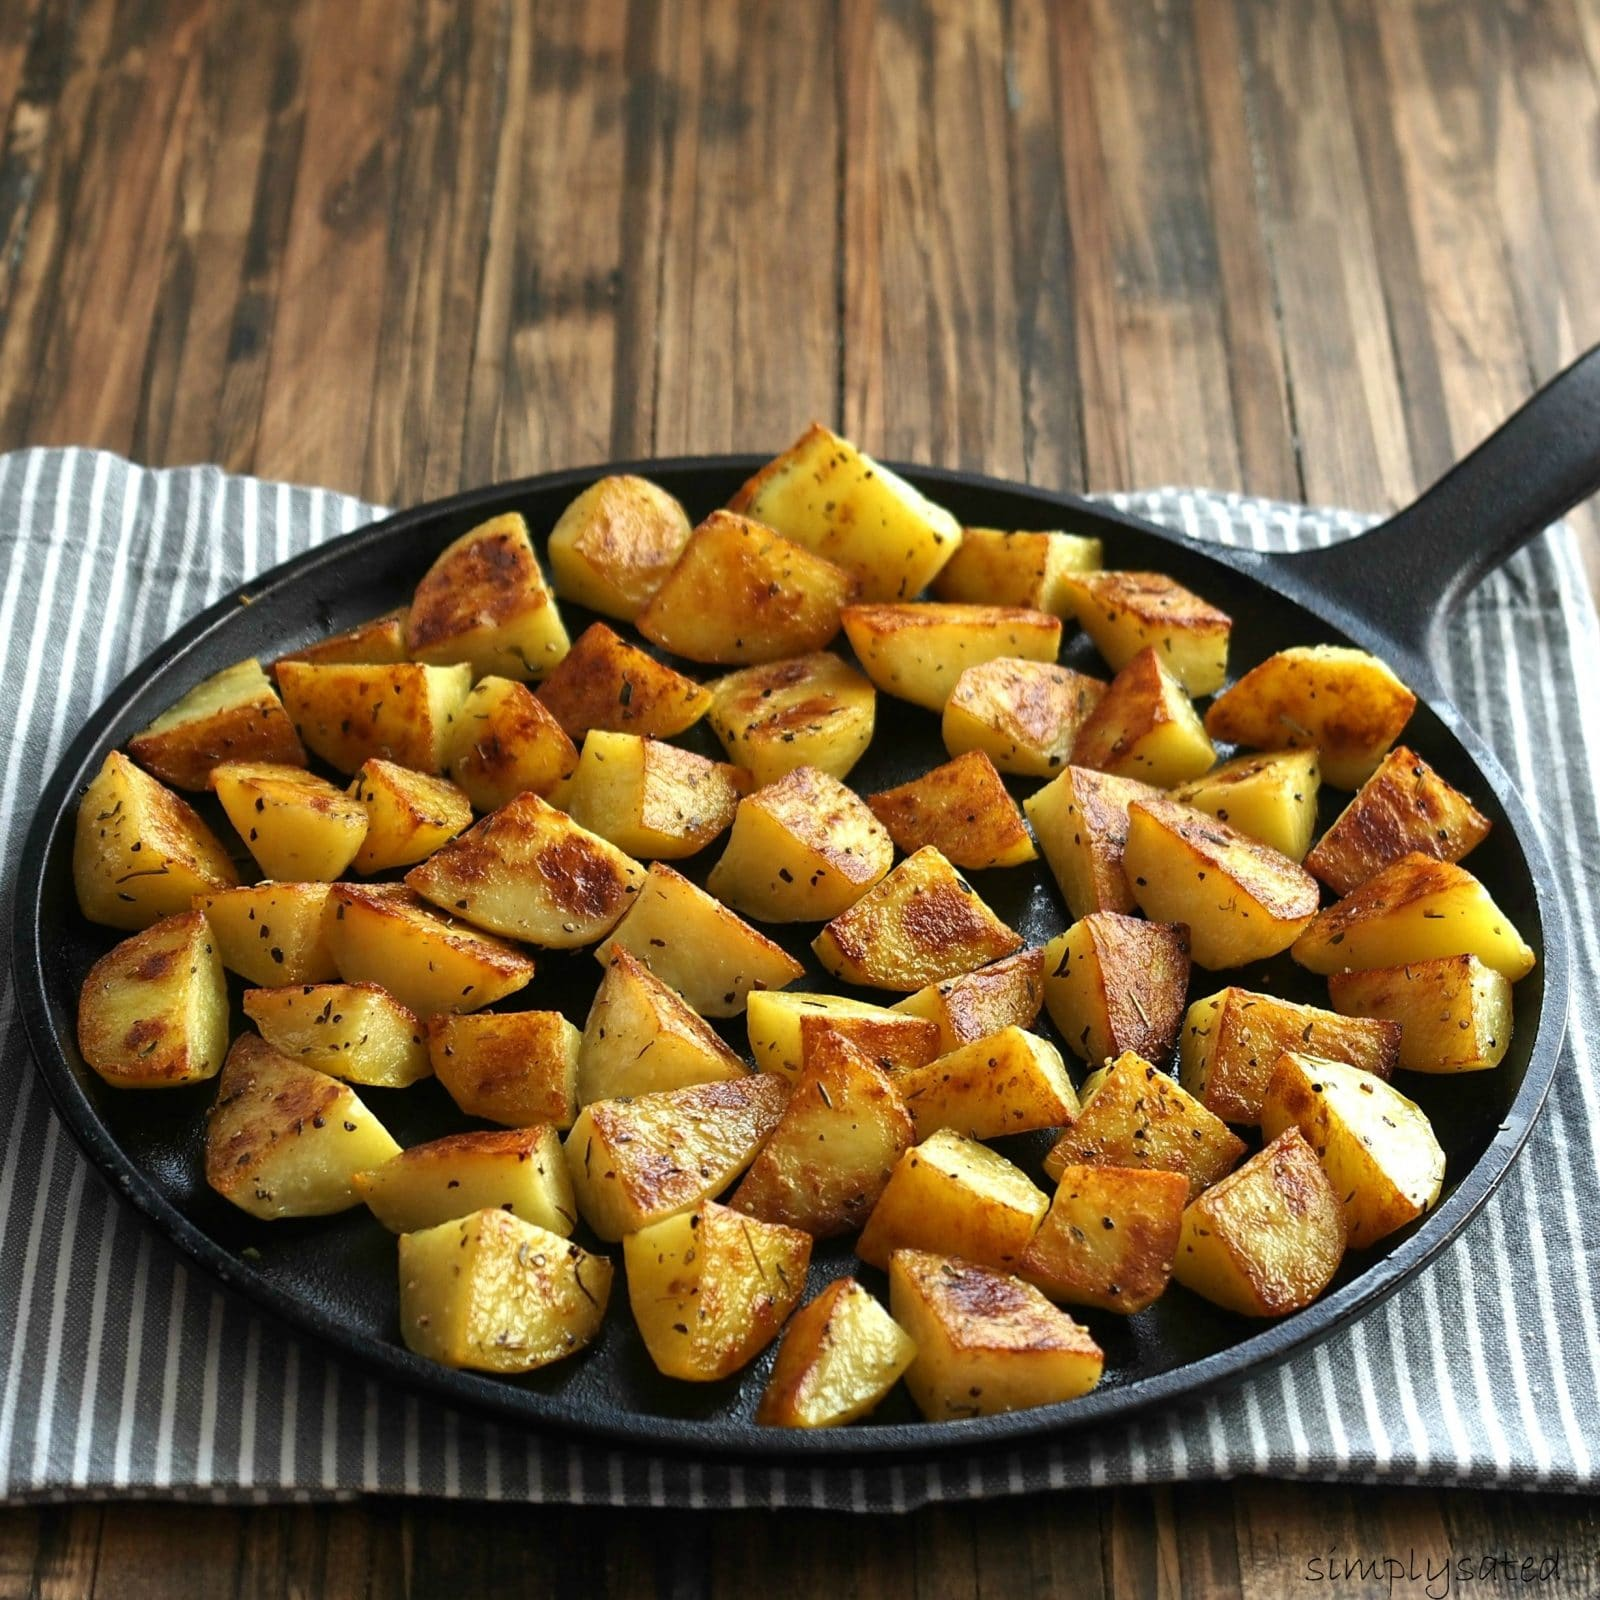 Roasted Potatoes. Simple recipes are the best. Peeled potatoes drizzled with olive oil, sprinkled with favorite seasoning and roasted to perfection. Simply Sated